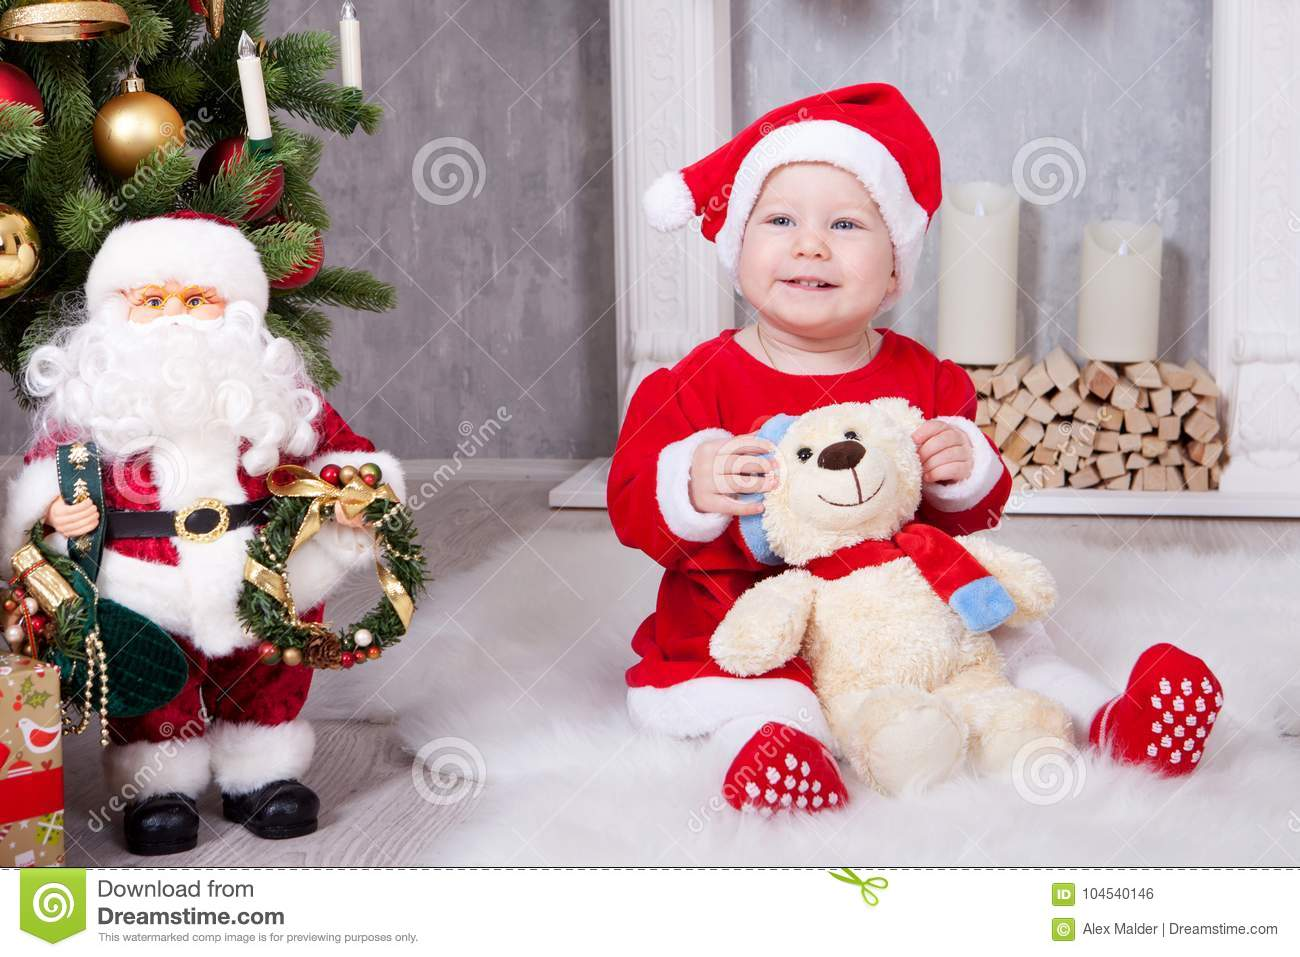 Christmas or New year celebration. Little girl in red dress and santa hat with bear toy sitting on the floor near the Christmas tr